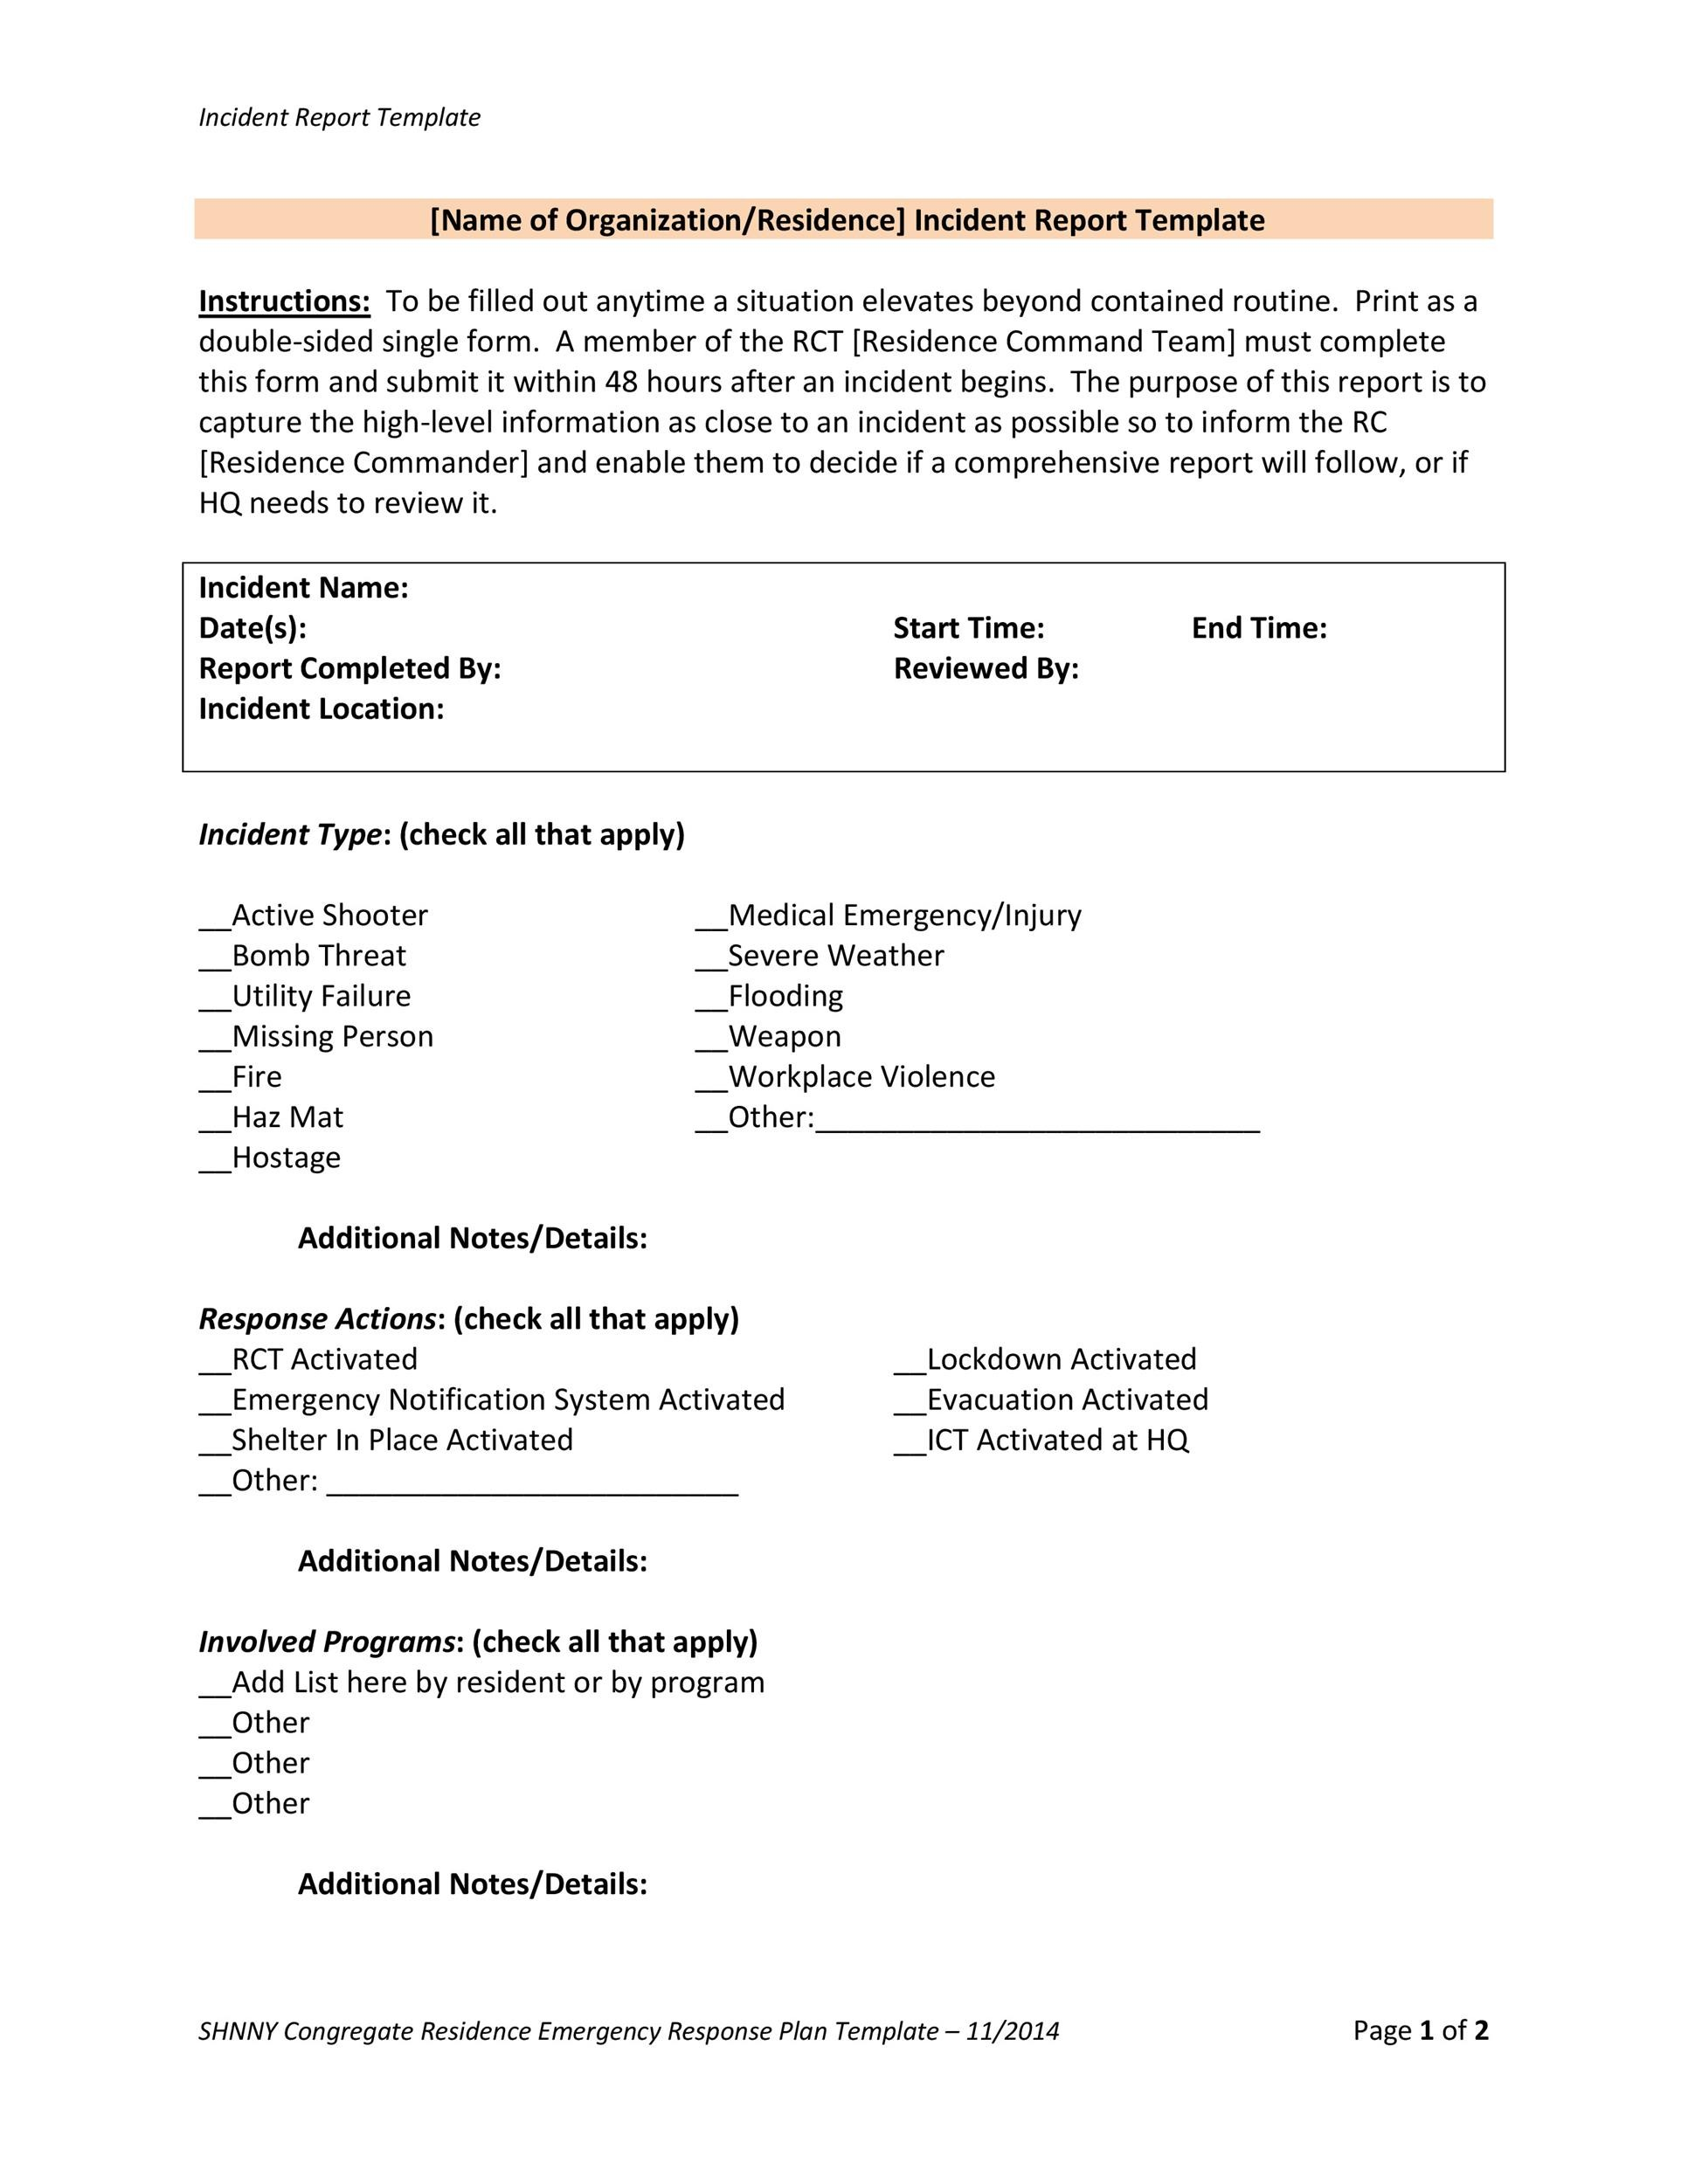 60+ Incident Report Template Employee, Police, Generic - Template Lab - medical incident report form